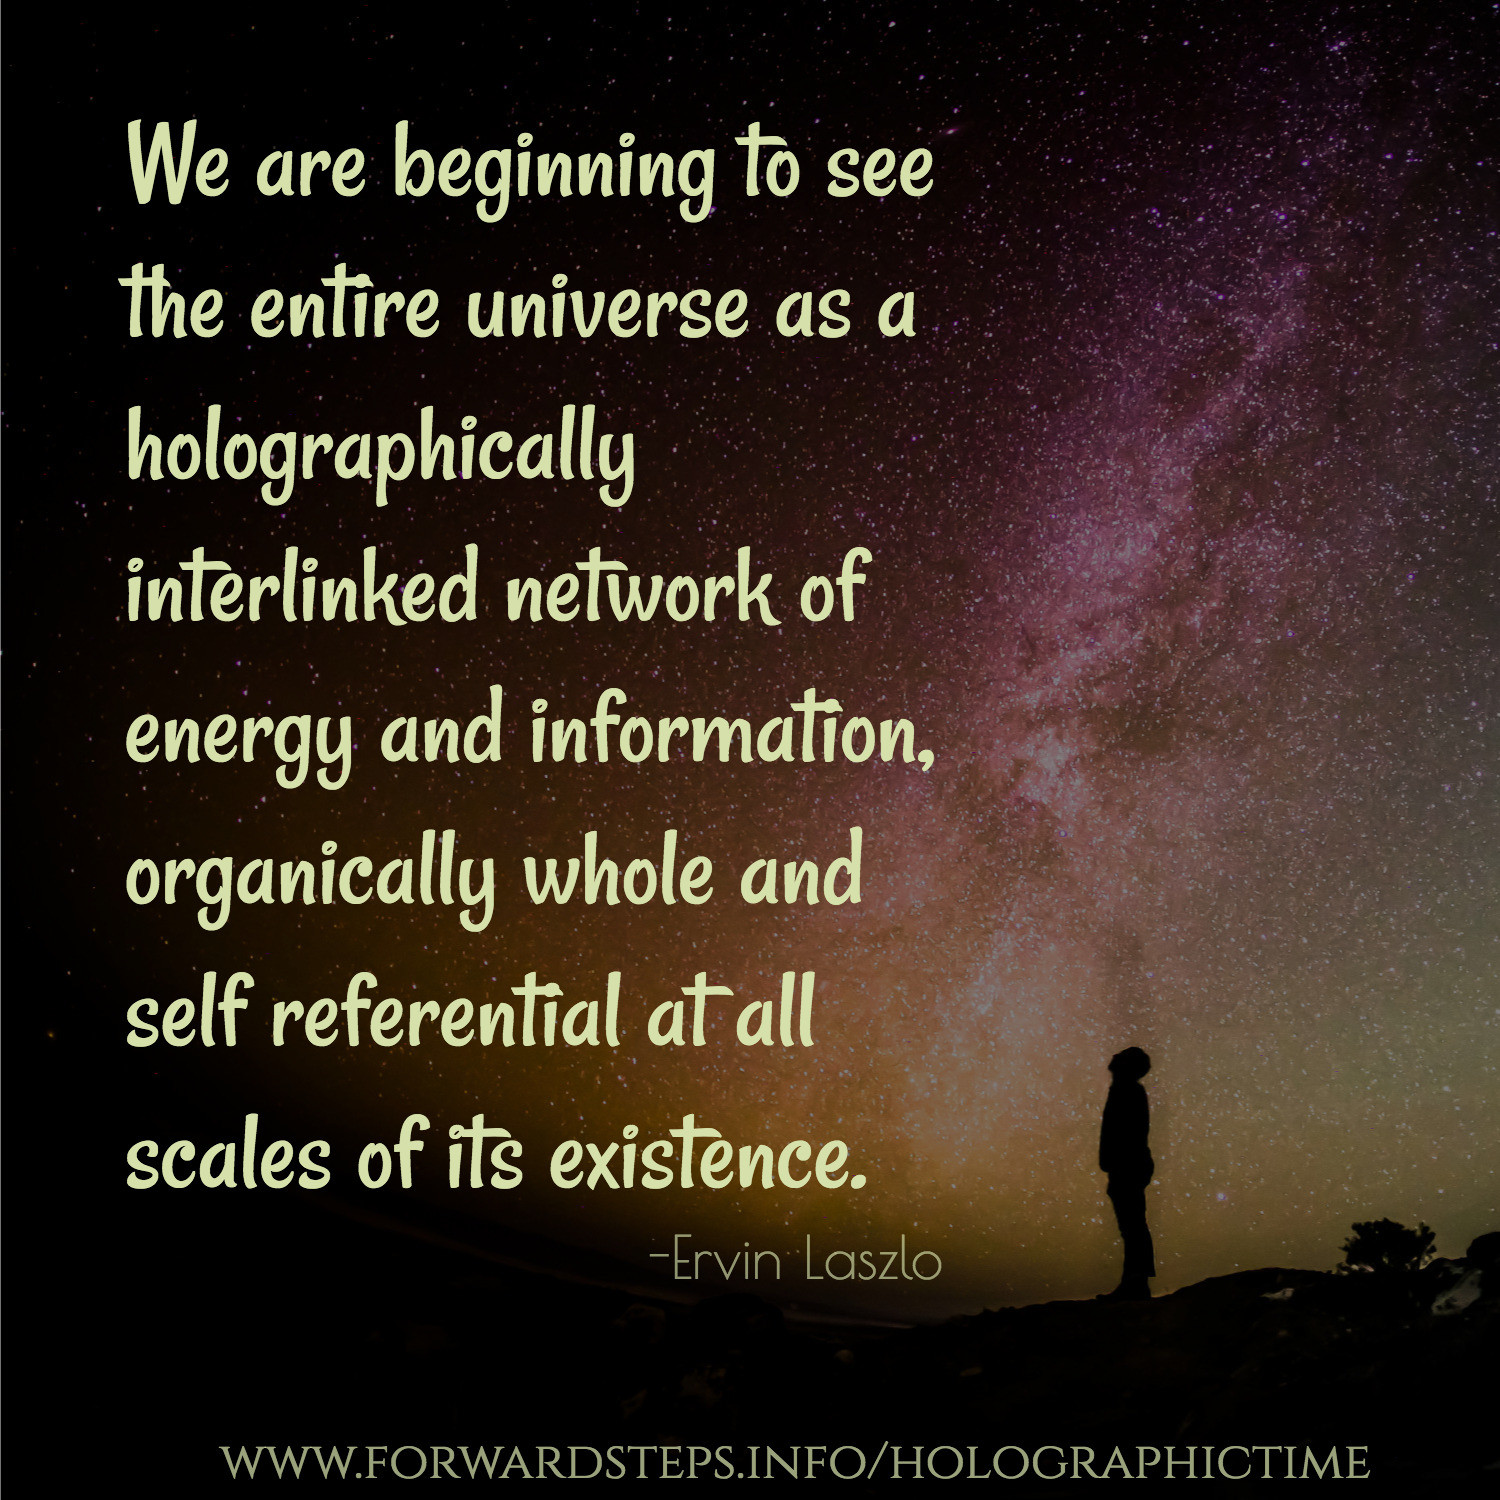 Holographic Time article image 3